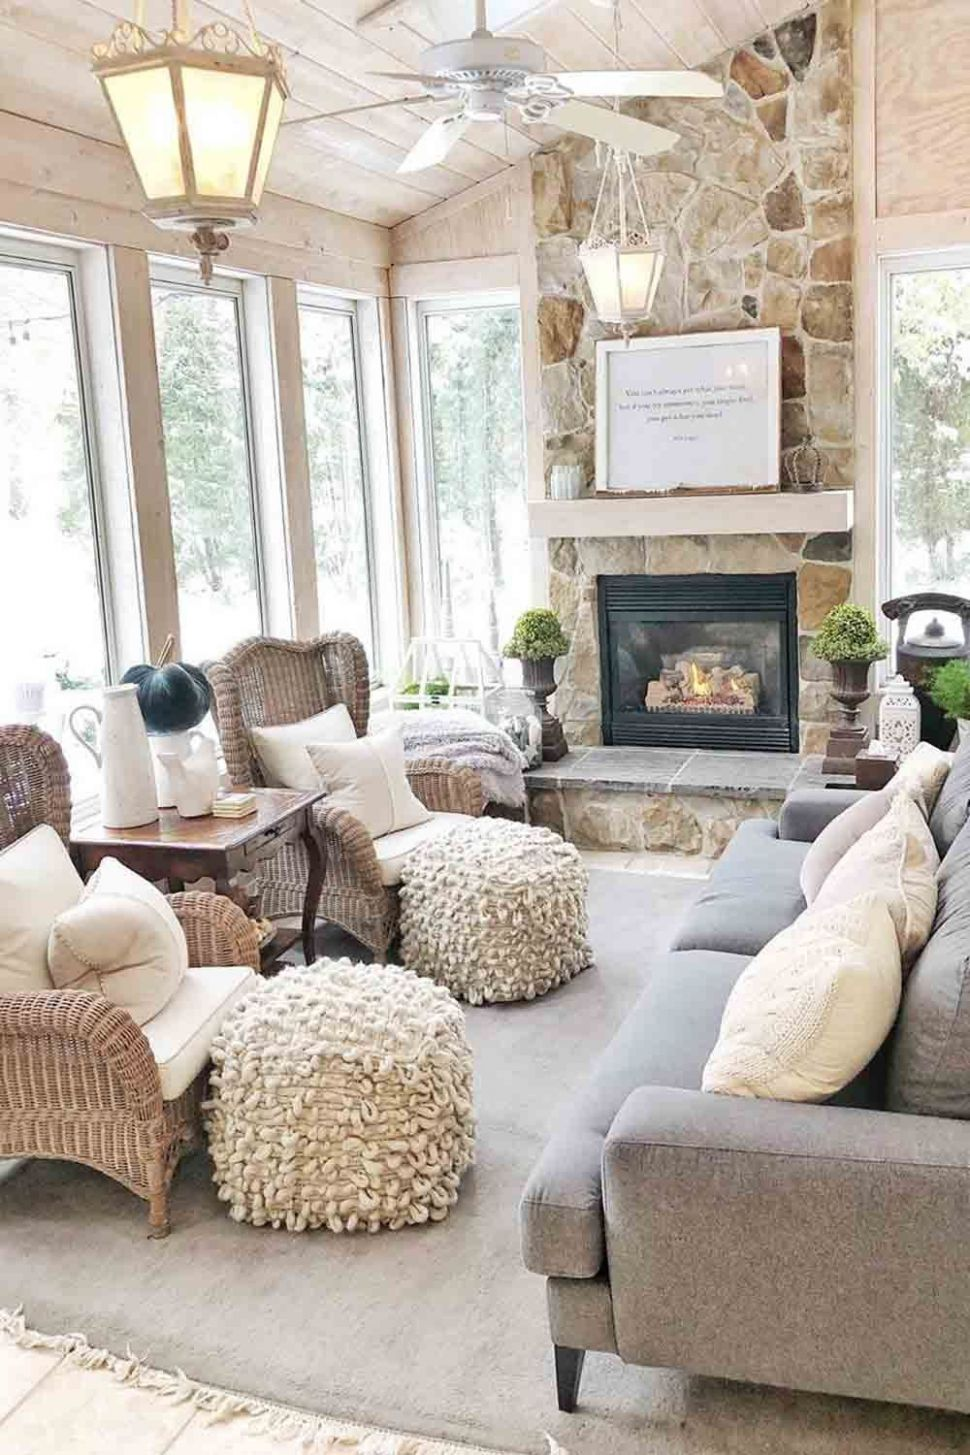 11 Sunroom Ideas: The Best Combo Of Indoor And Outdoor In One ...